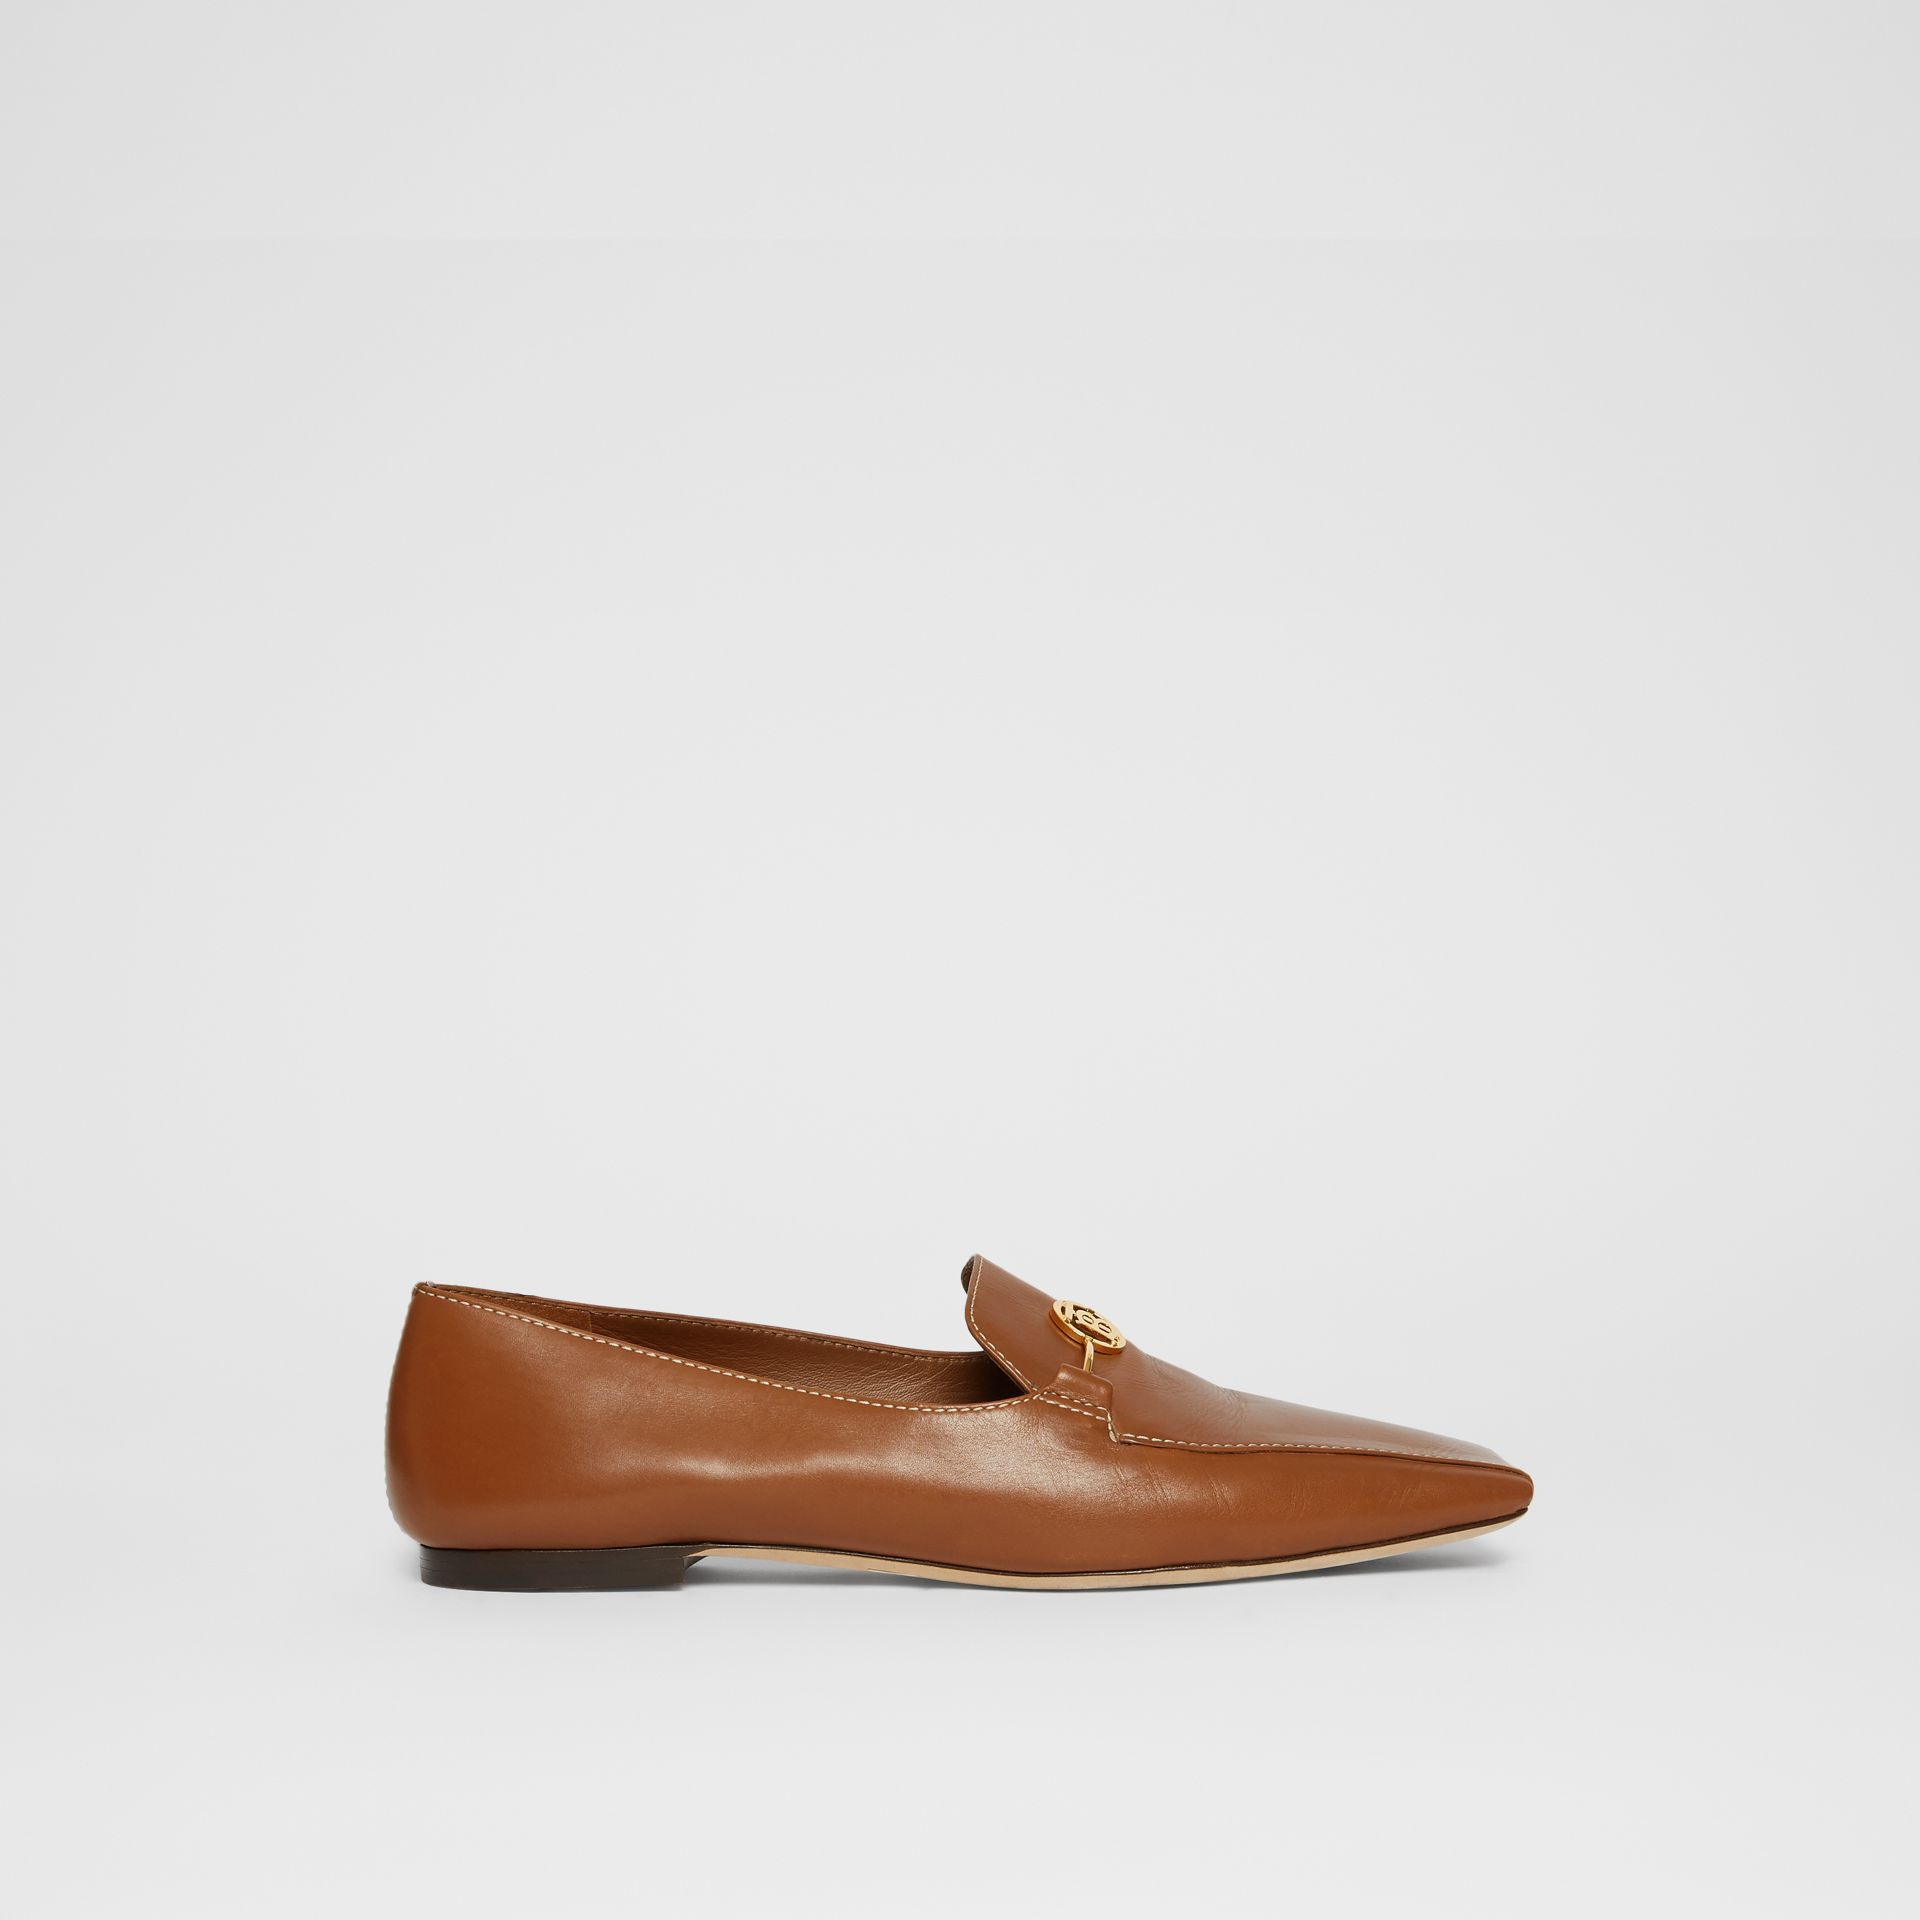 Monogram Motif Leather Loafers in Tan - Women | Burberry Australia - gallery image 5